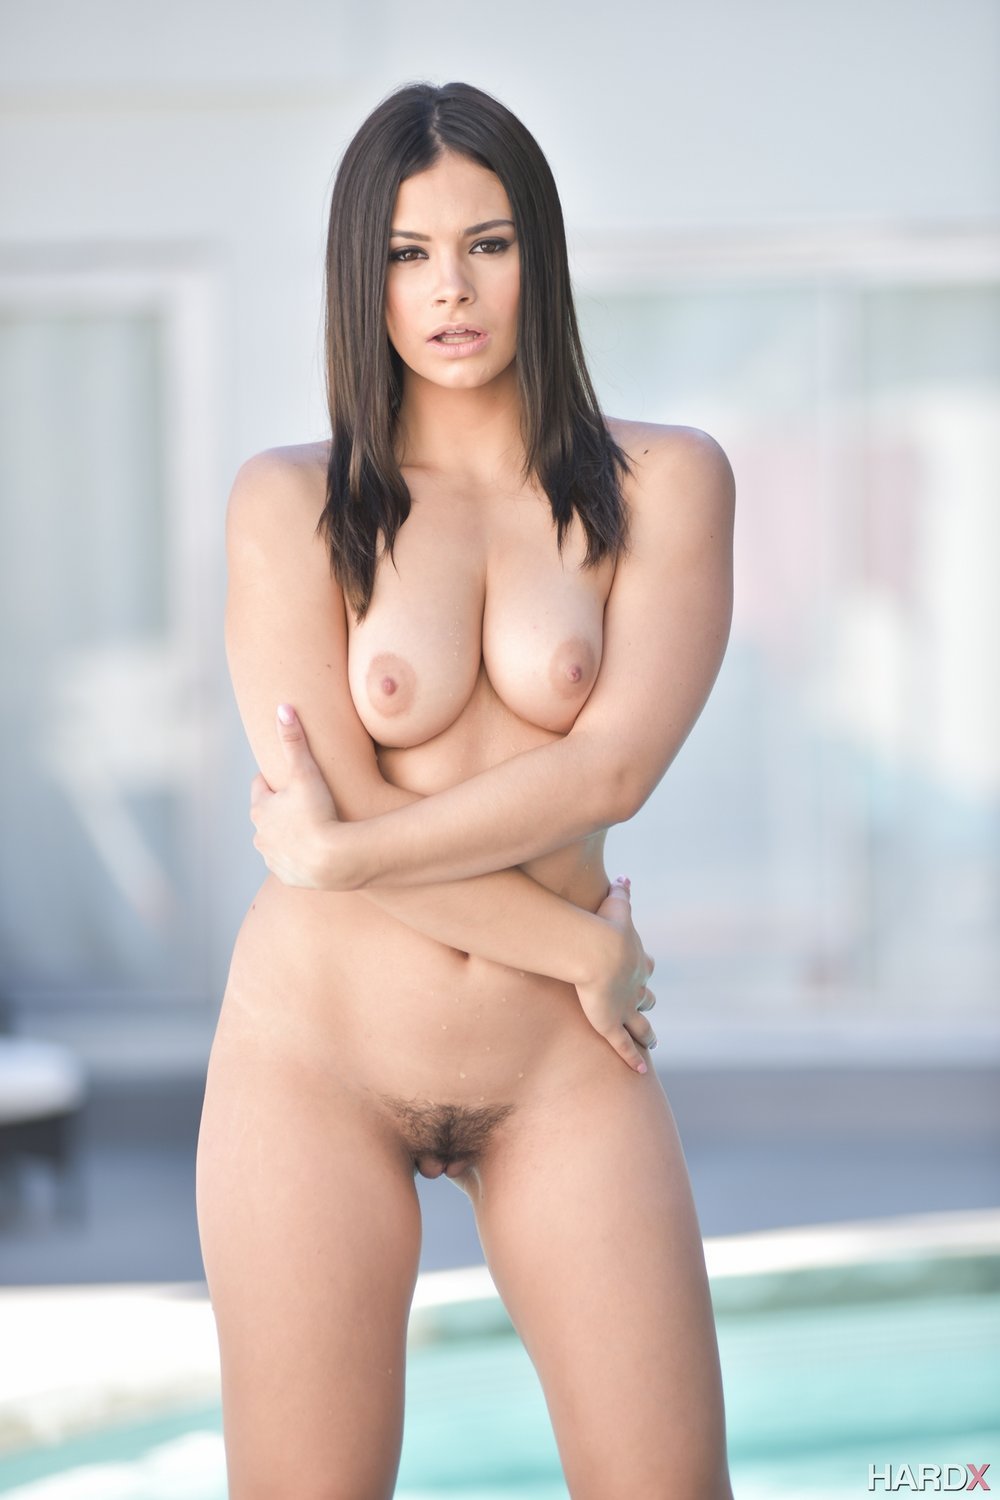 Starr nude pictures